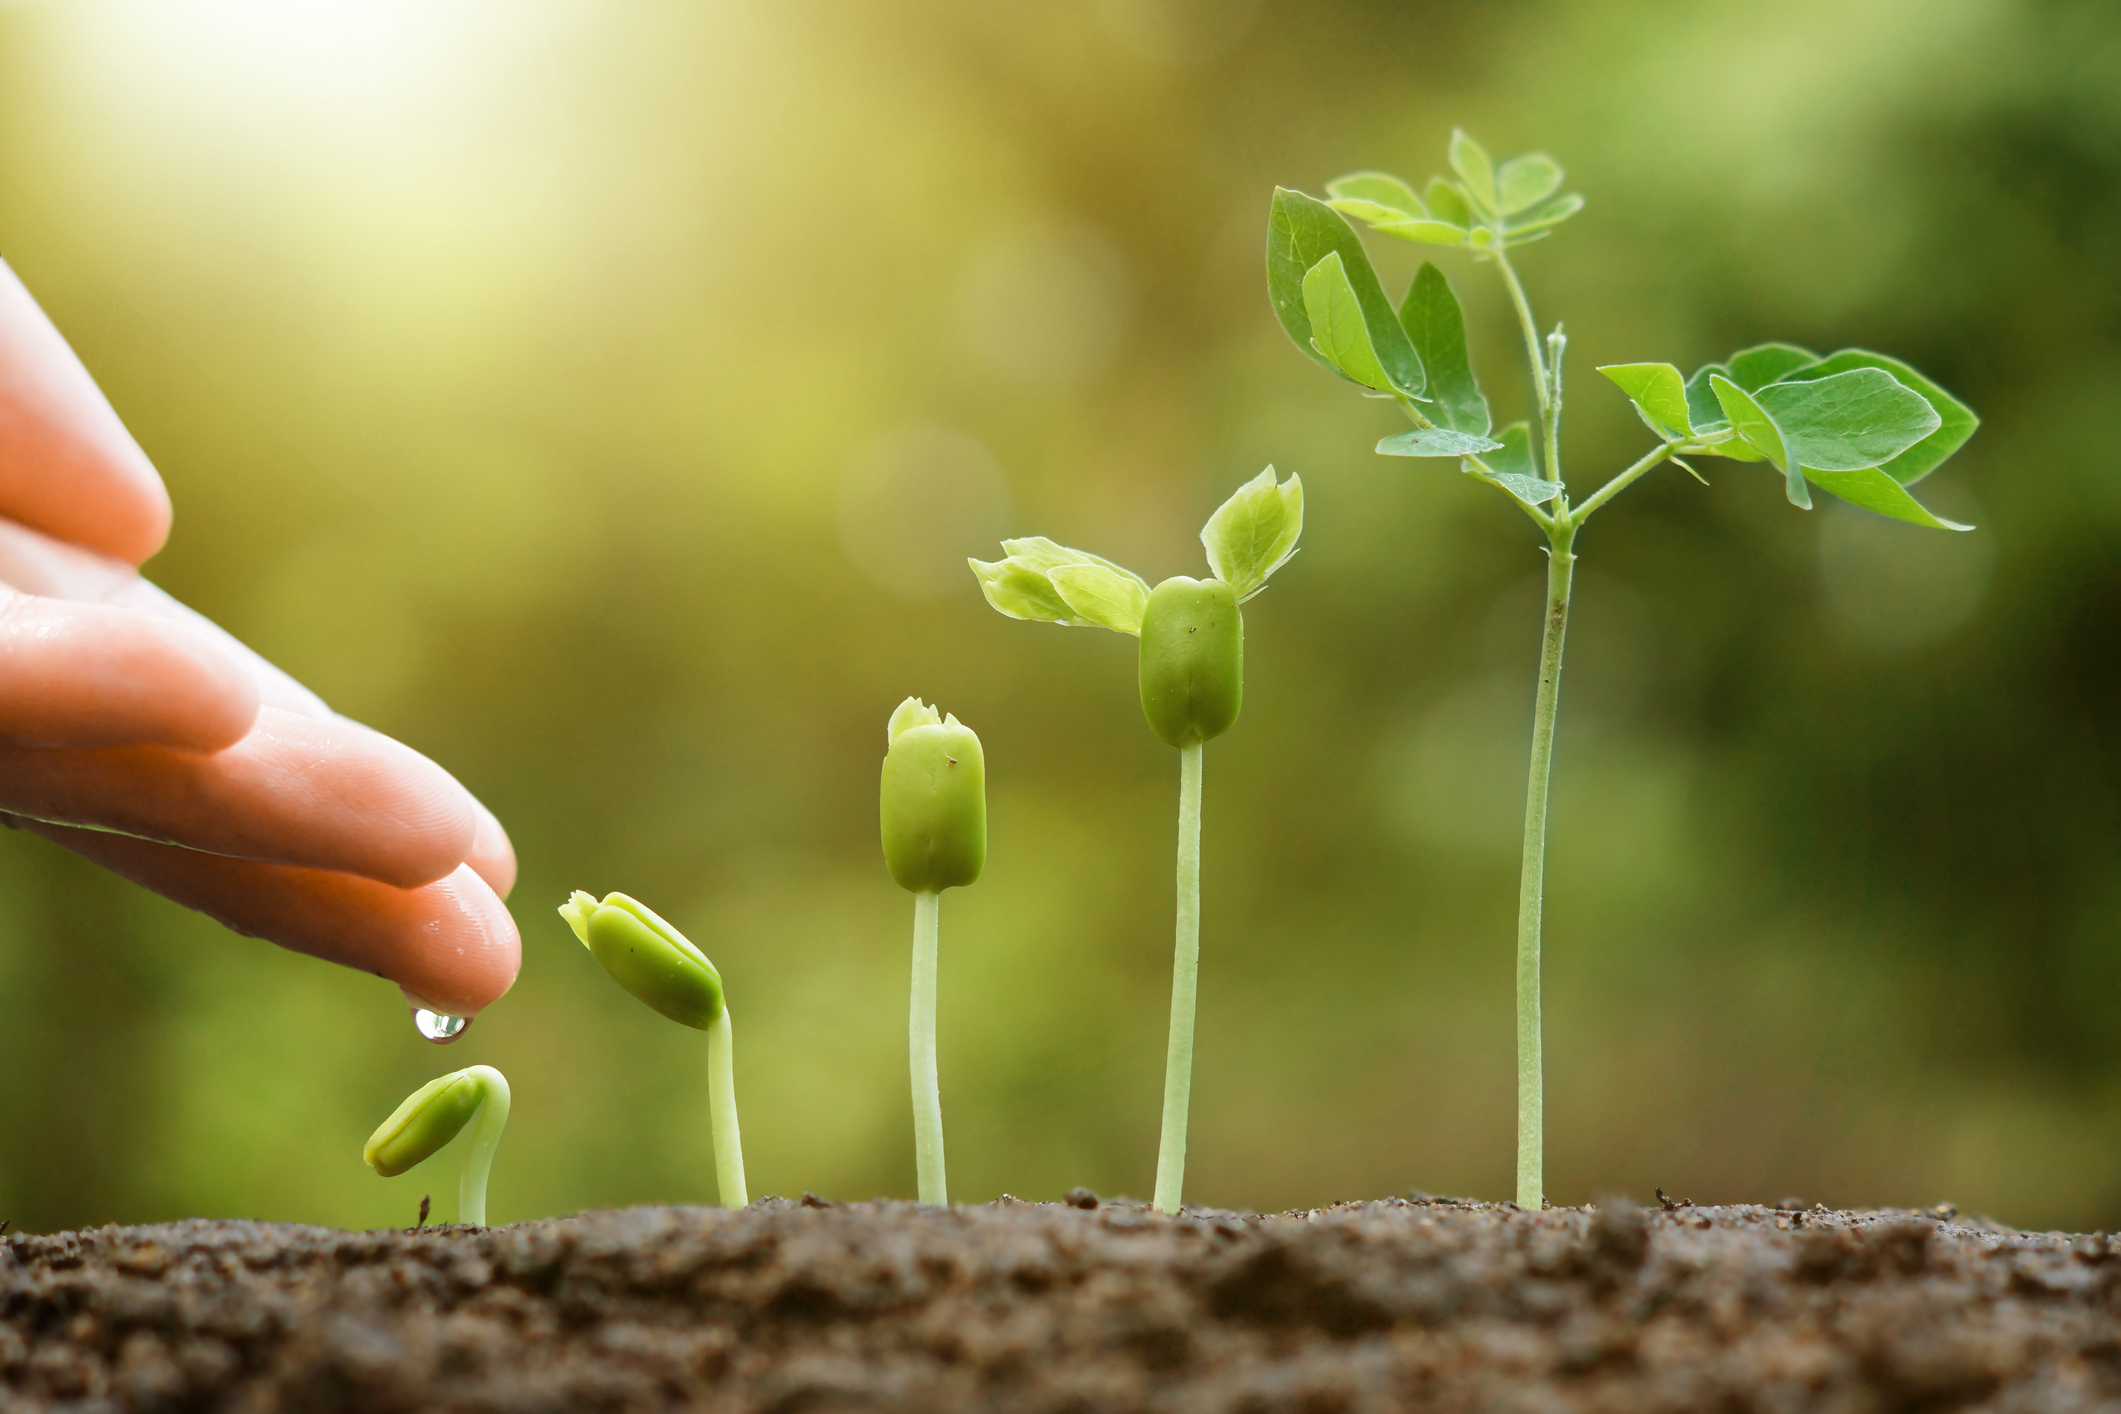 Seeds of Understanding Sprout in Fertile Minds